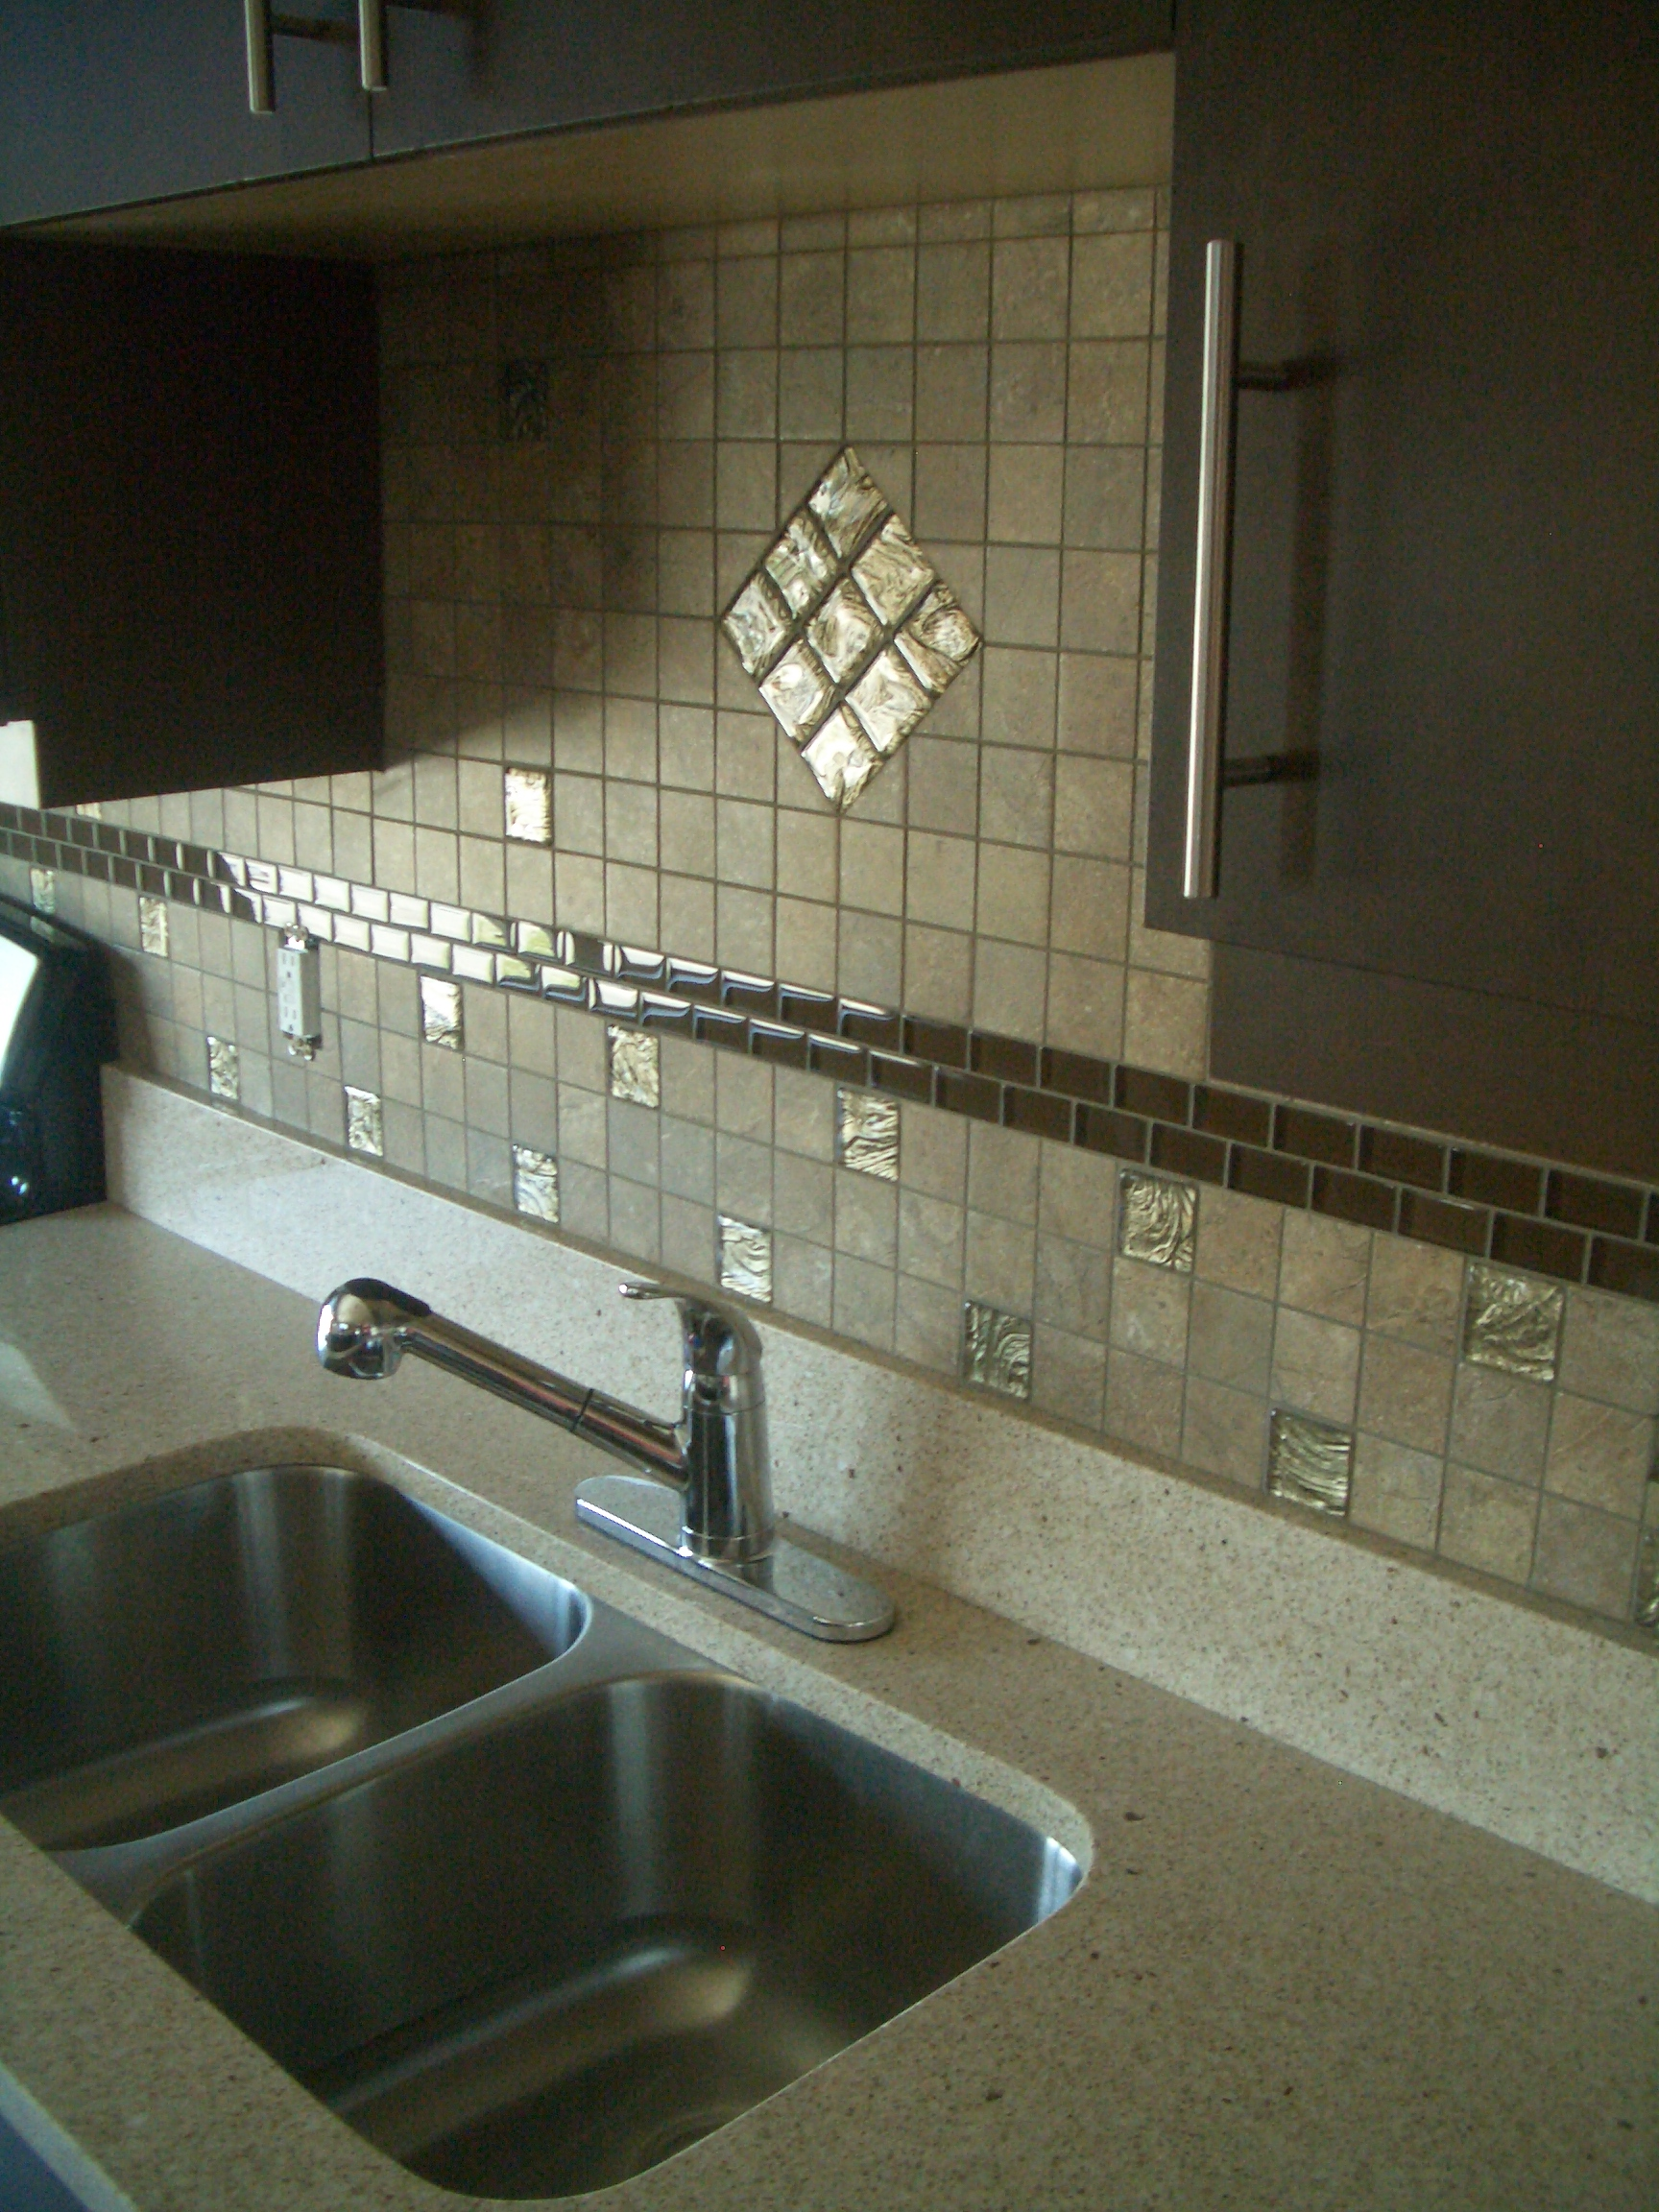 recently finished installing a porcelain tile backsplash with glass